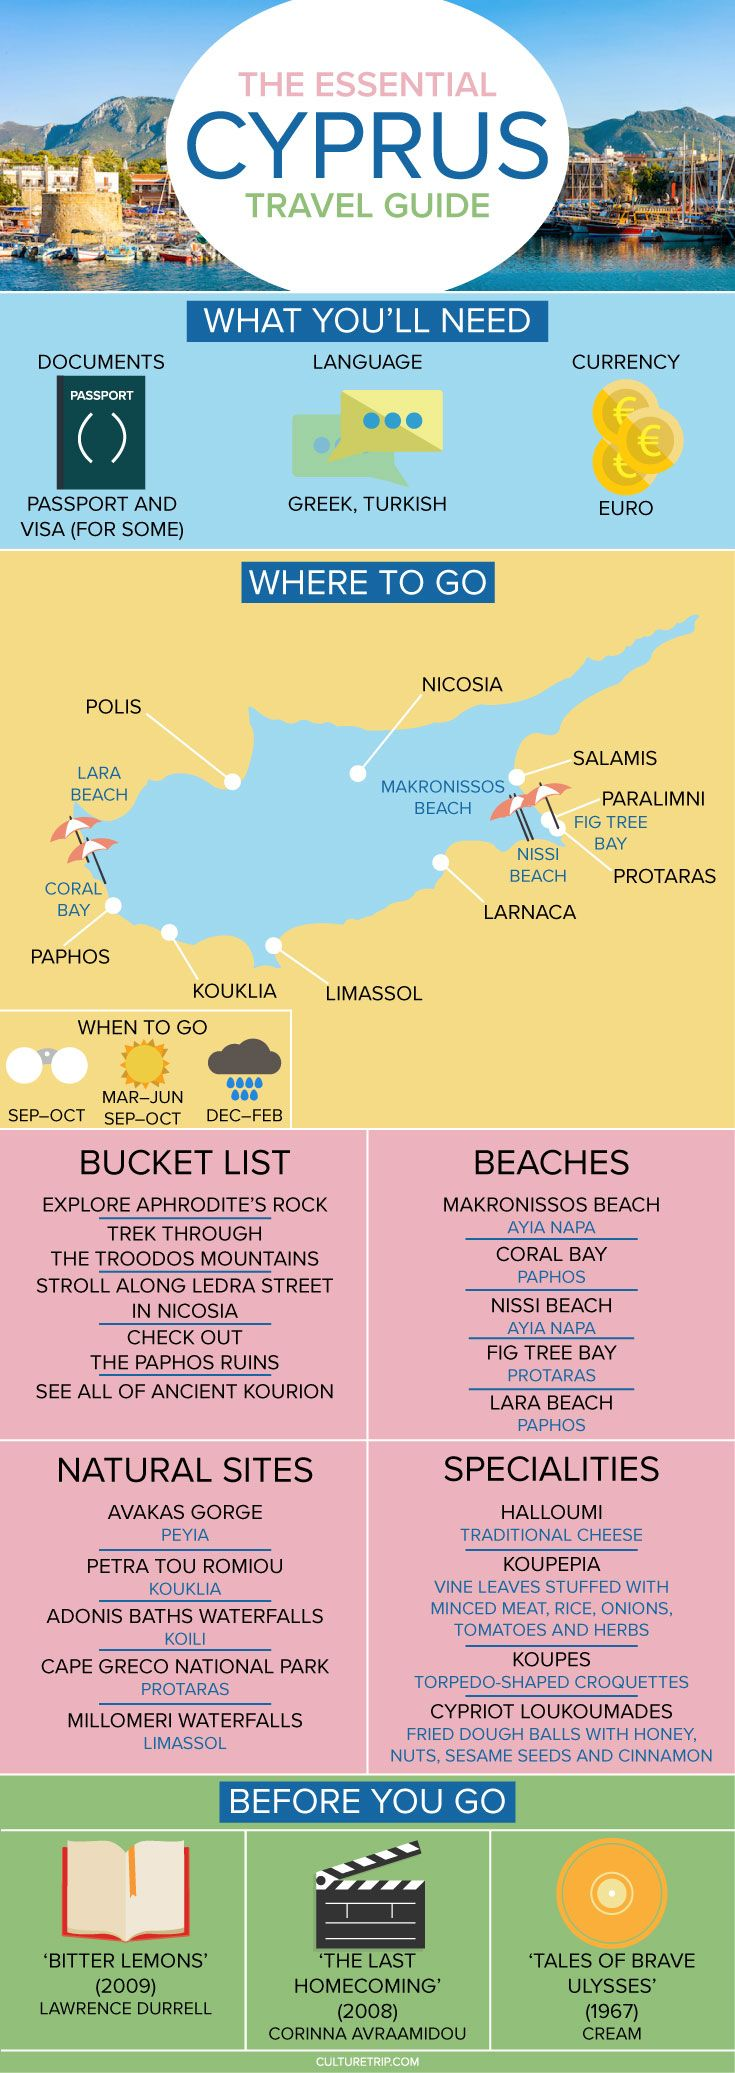 Cyprus Map Vector%0A how does a resume look